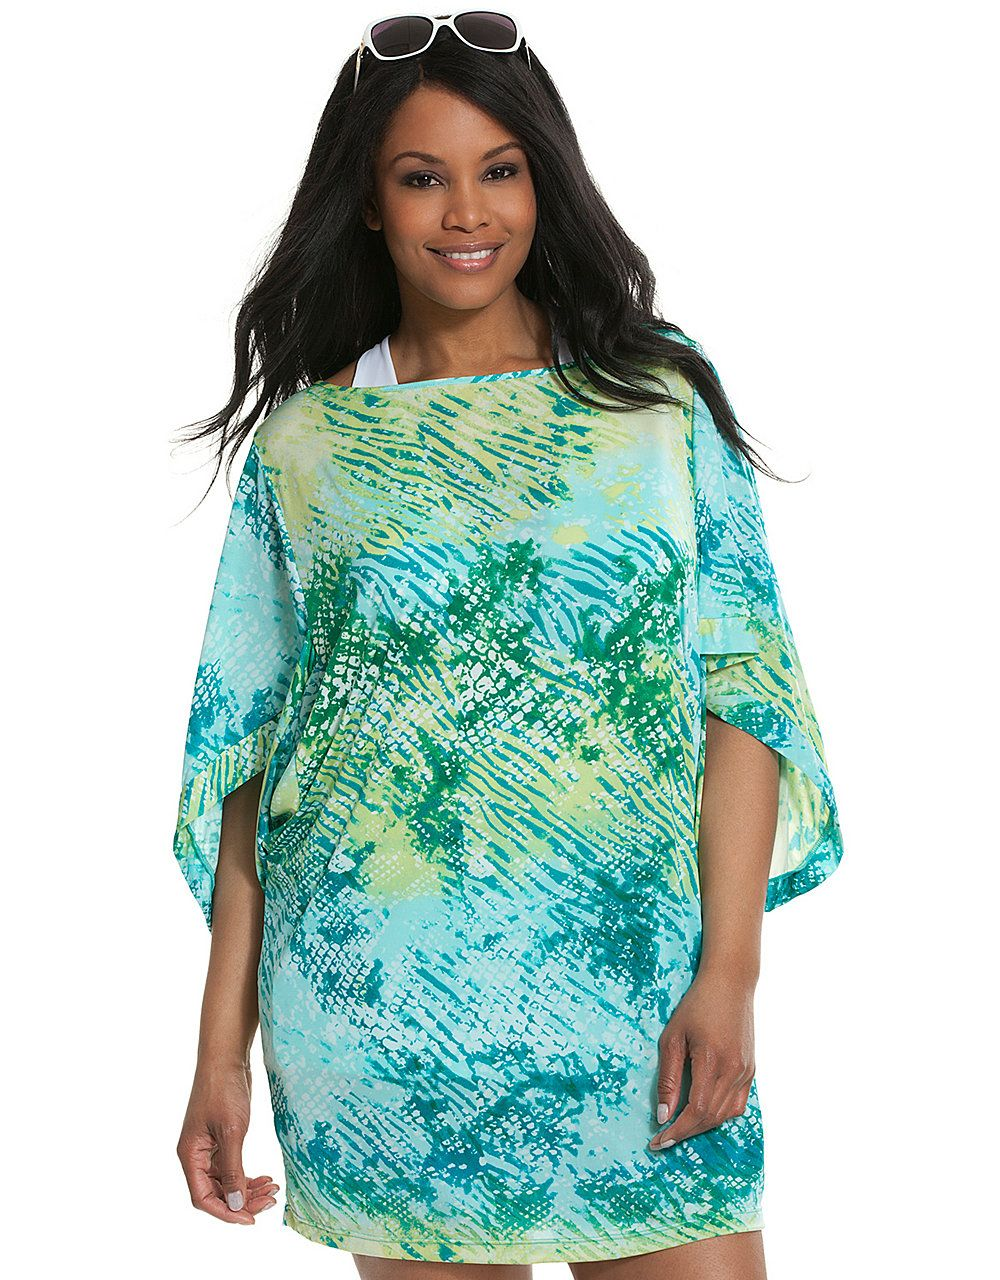 27bbff2515d83 PURCHASED*Animal print kimono swim cover-up by Cacique   Lane Bryant ...